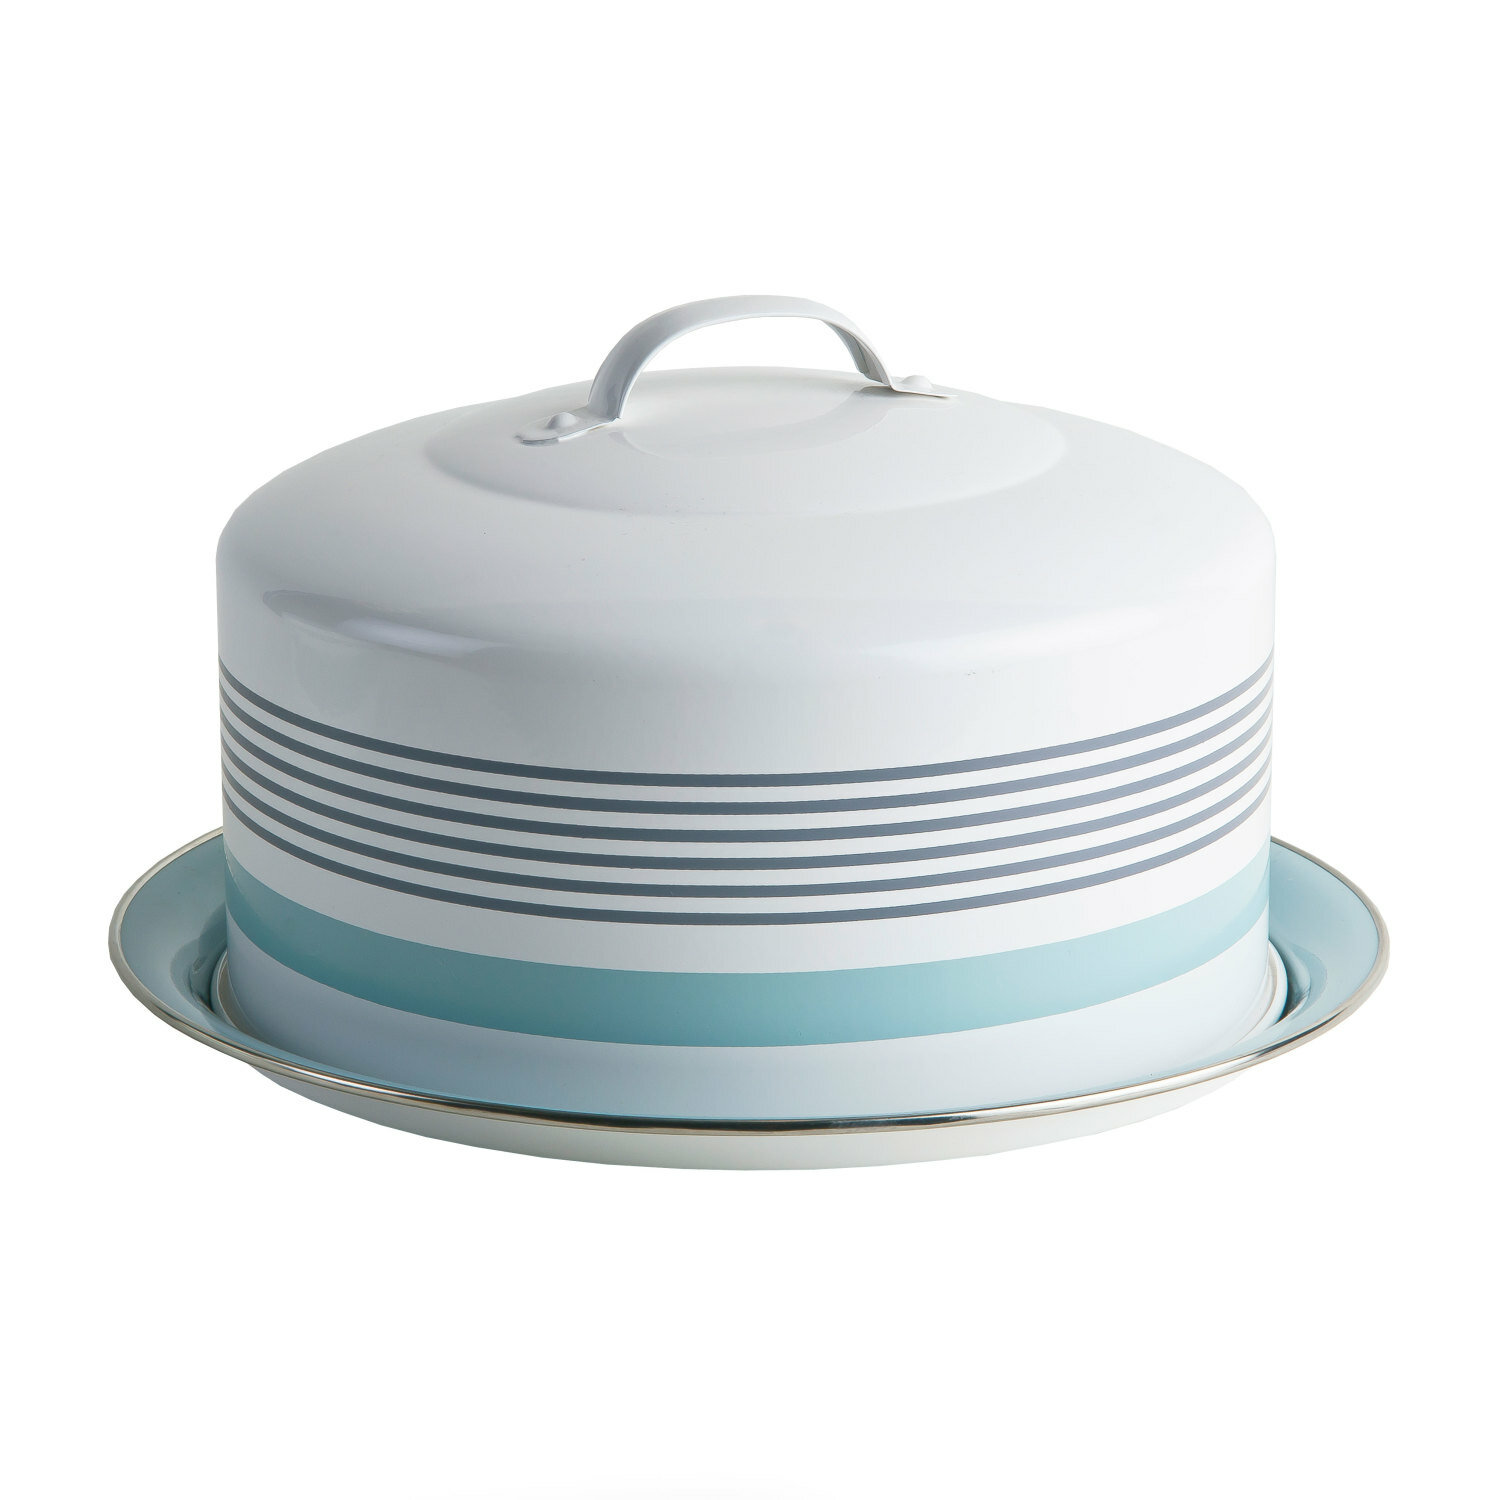 Round Cake Tin With Cover Lid And Handle Reviews Birch Lane